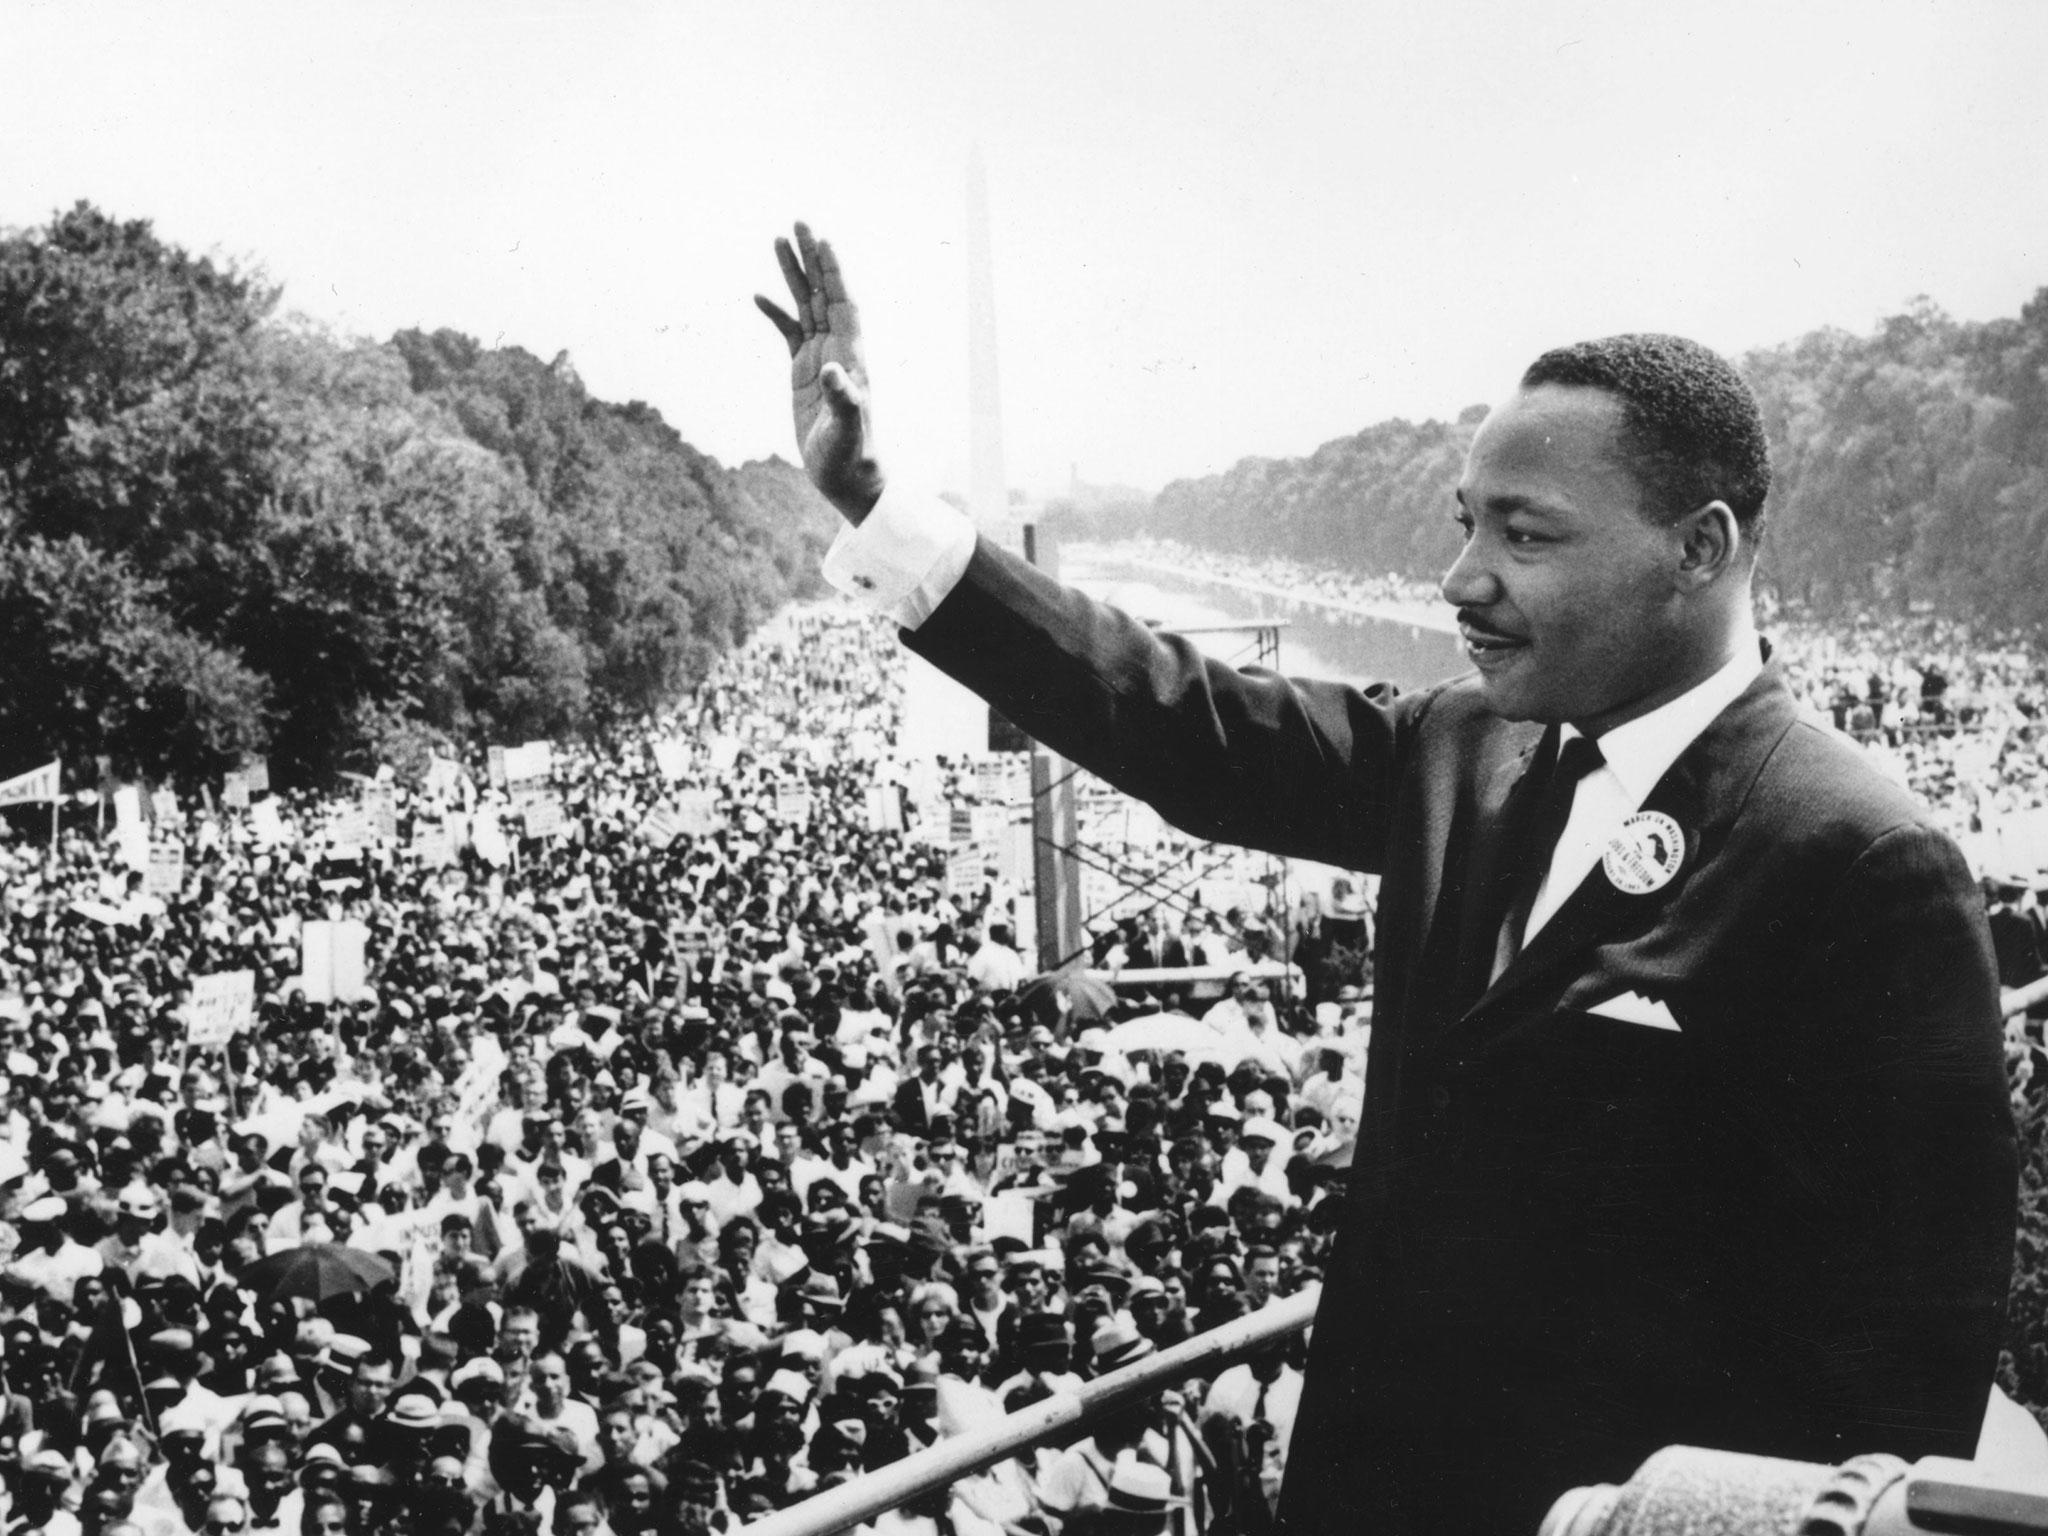 #MeToo Movement Go After Saintly Man, Martin Luther King